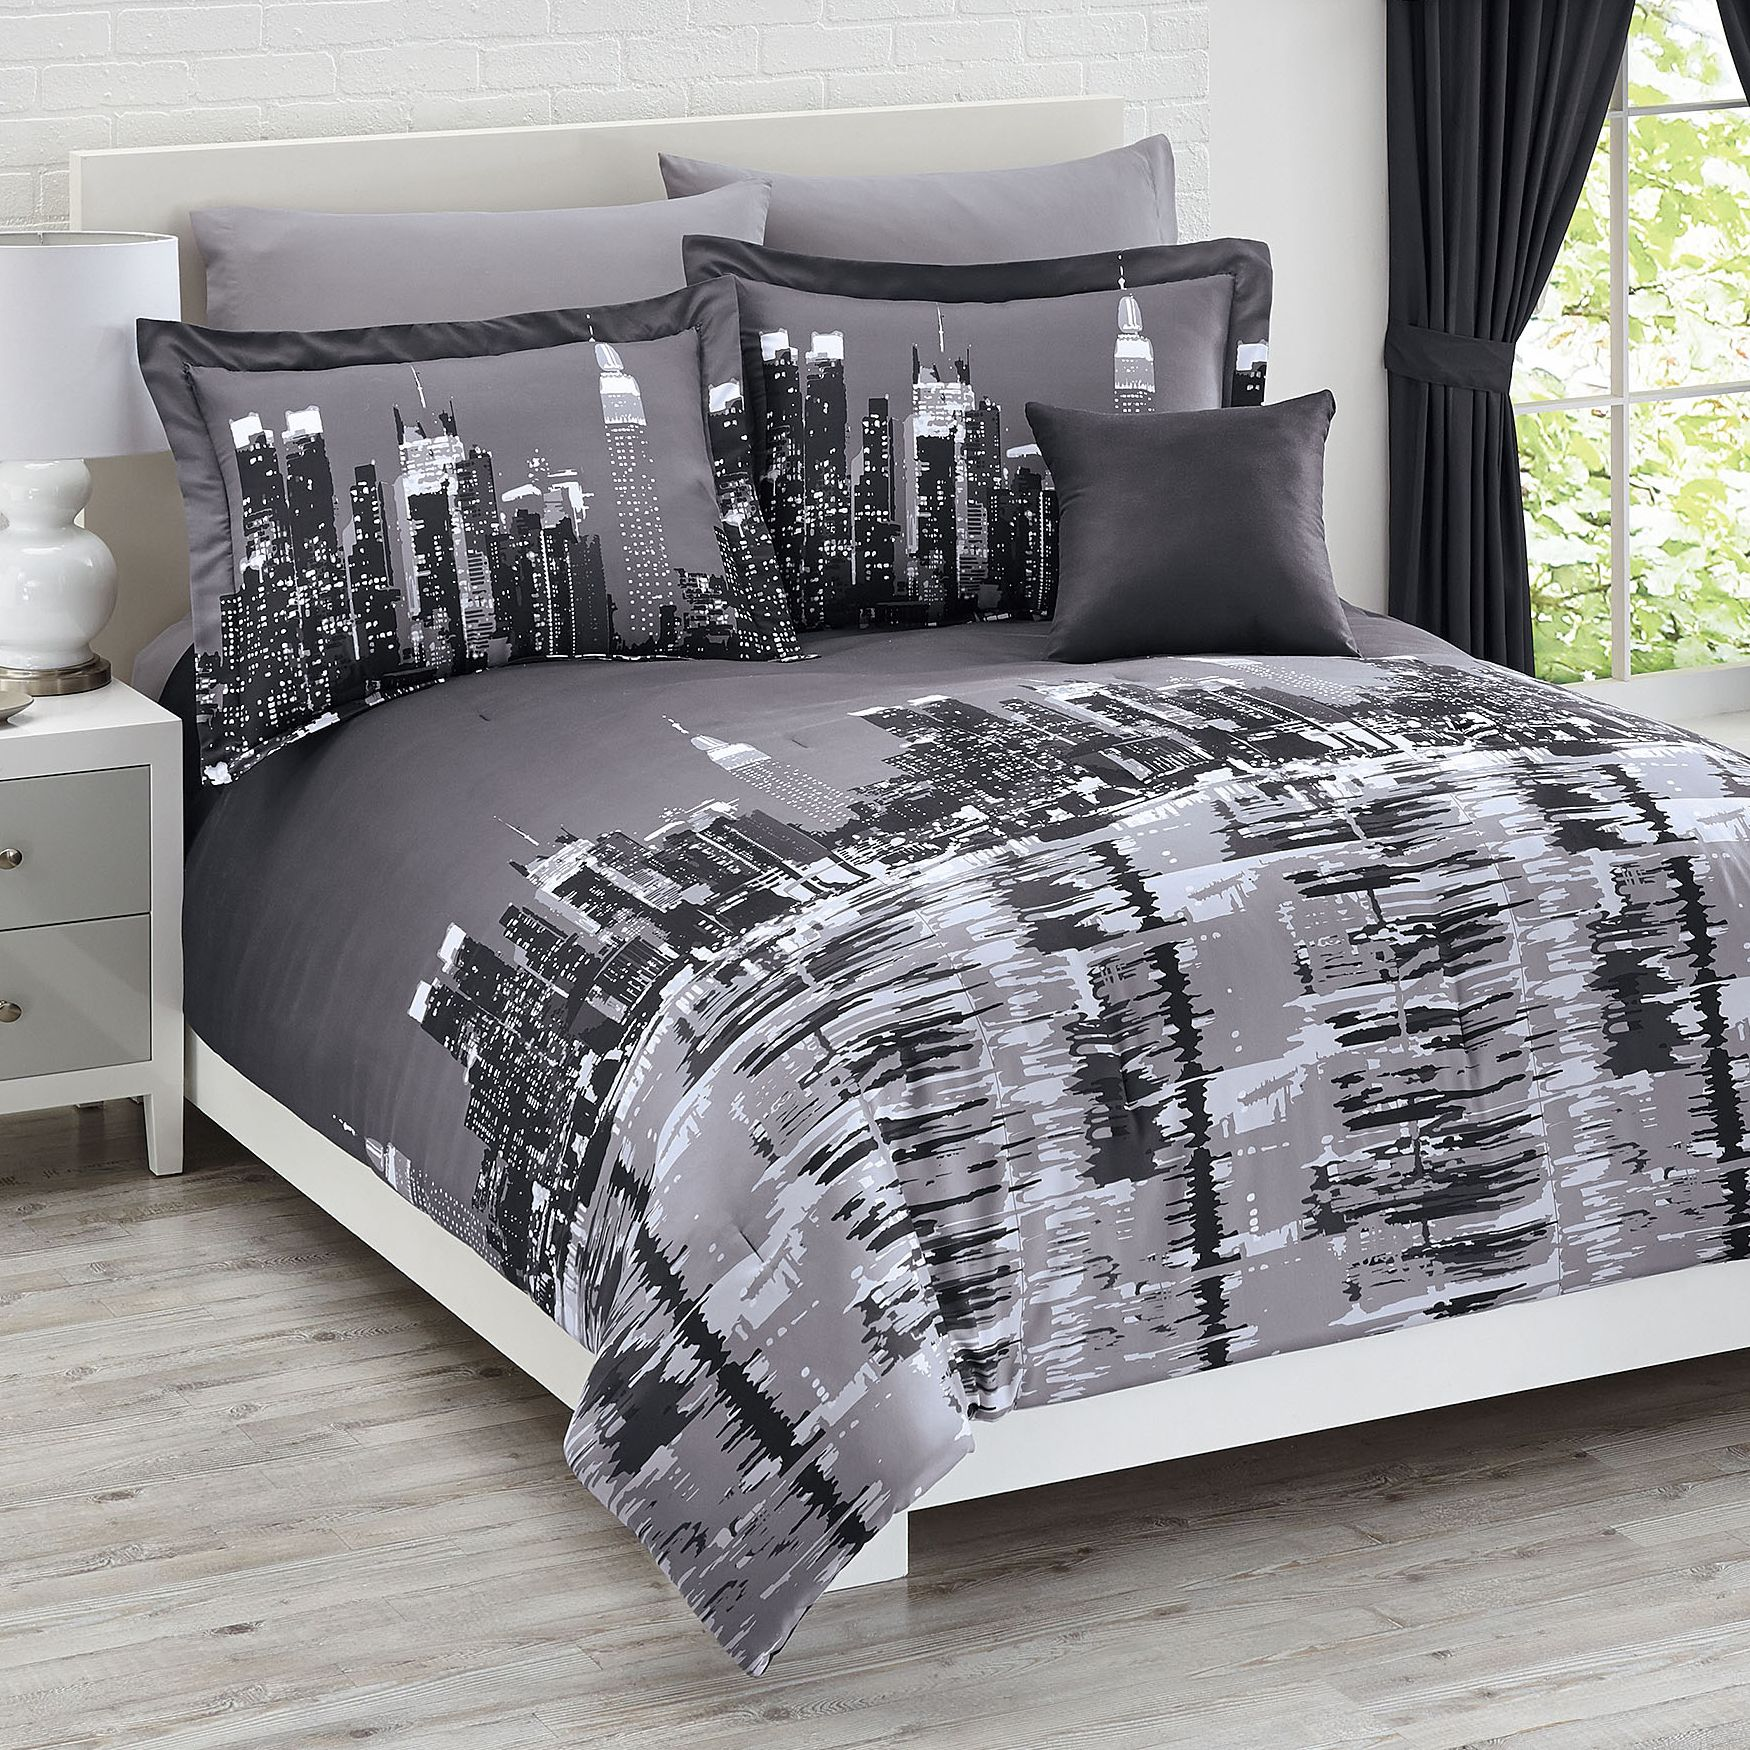 New City Ny Rentals: New York City 4-Pc. Reversible Comforter Set Collection